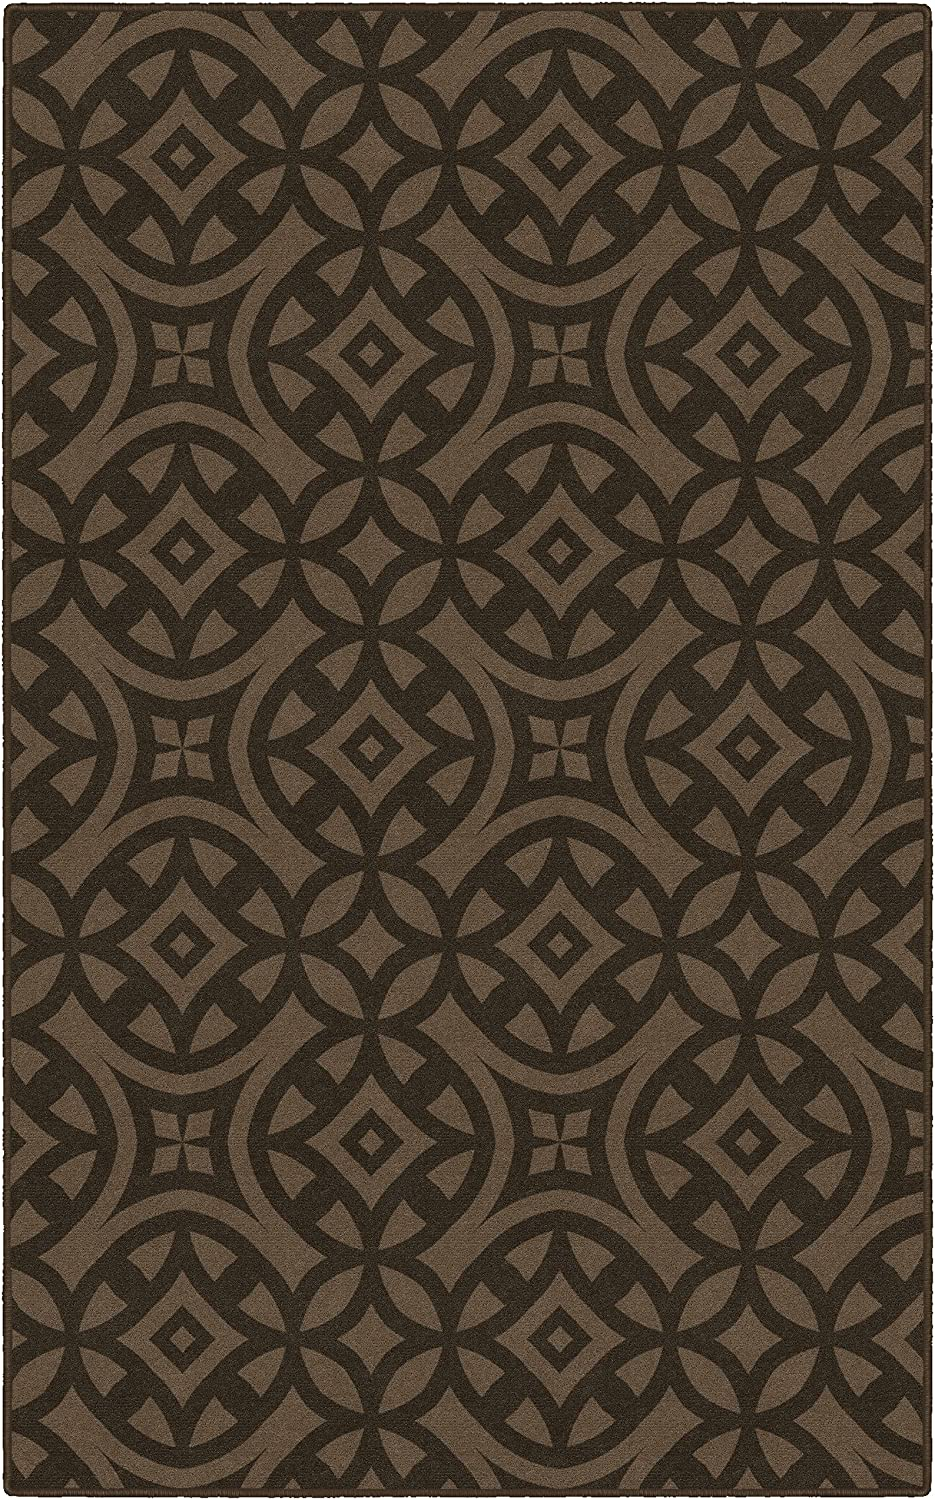 Brumlow MILLS Harper Trellis Home Indoor Area Rug with Geometric Print Pattern, Perfect for Any Living Room Decor, Dining Room, Kitchen Rug, or Bedroom Area Rug, 5' x 8', Brown (EW10197-5x8)